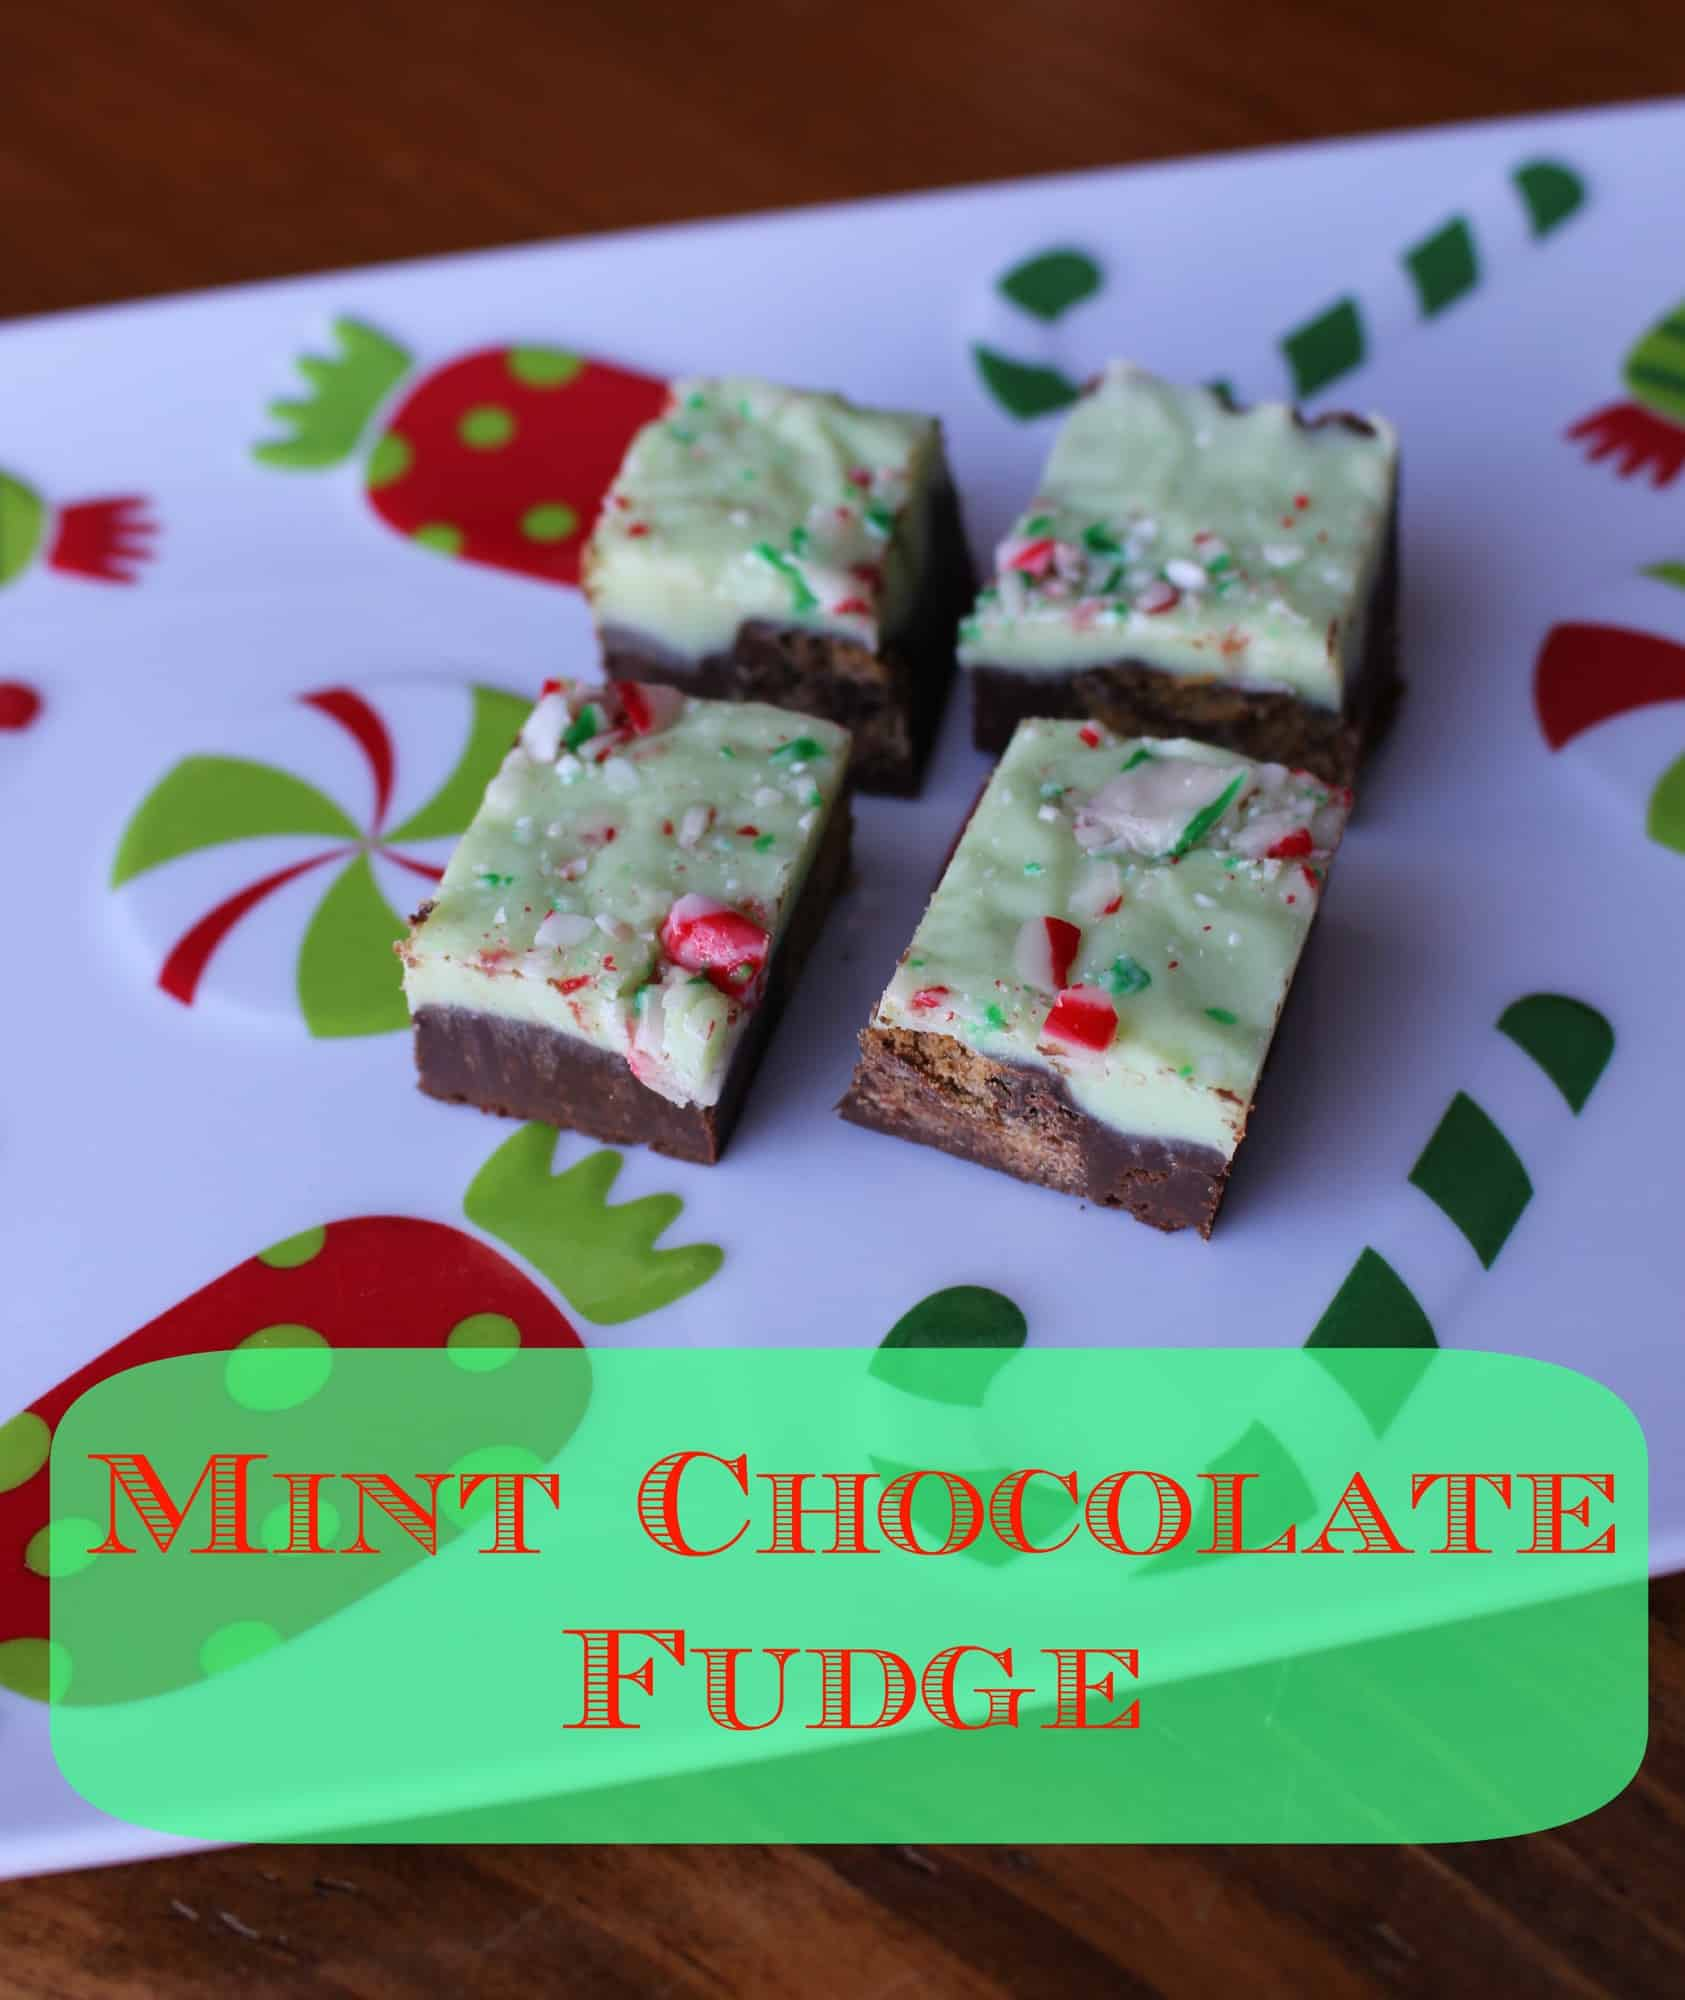 Easy baking exchange recipe - Mint chocolate fudge recipe